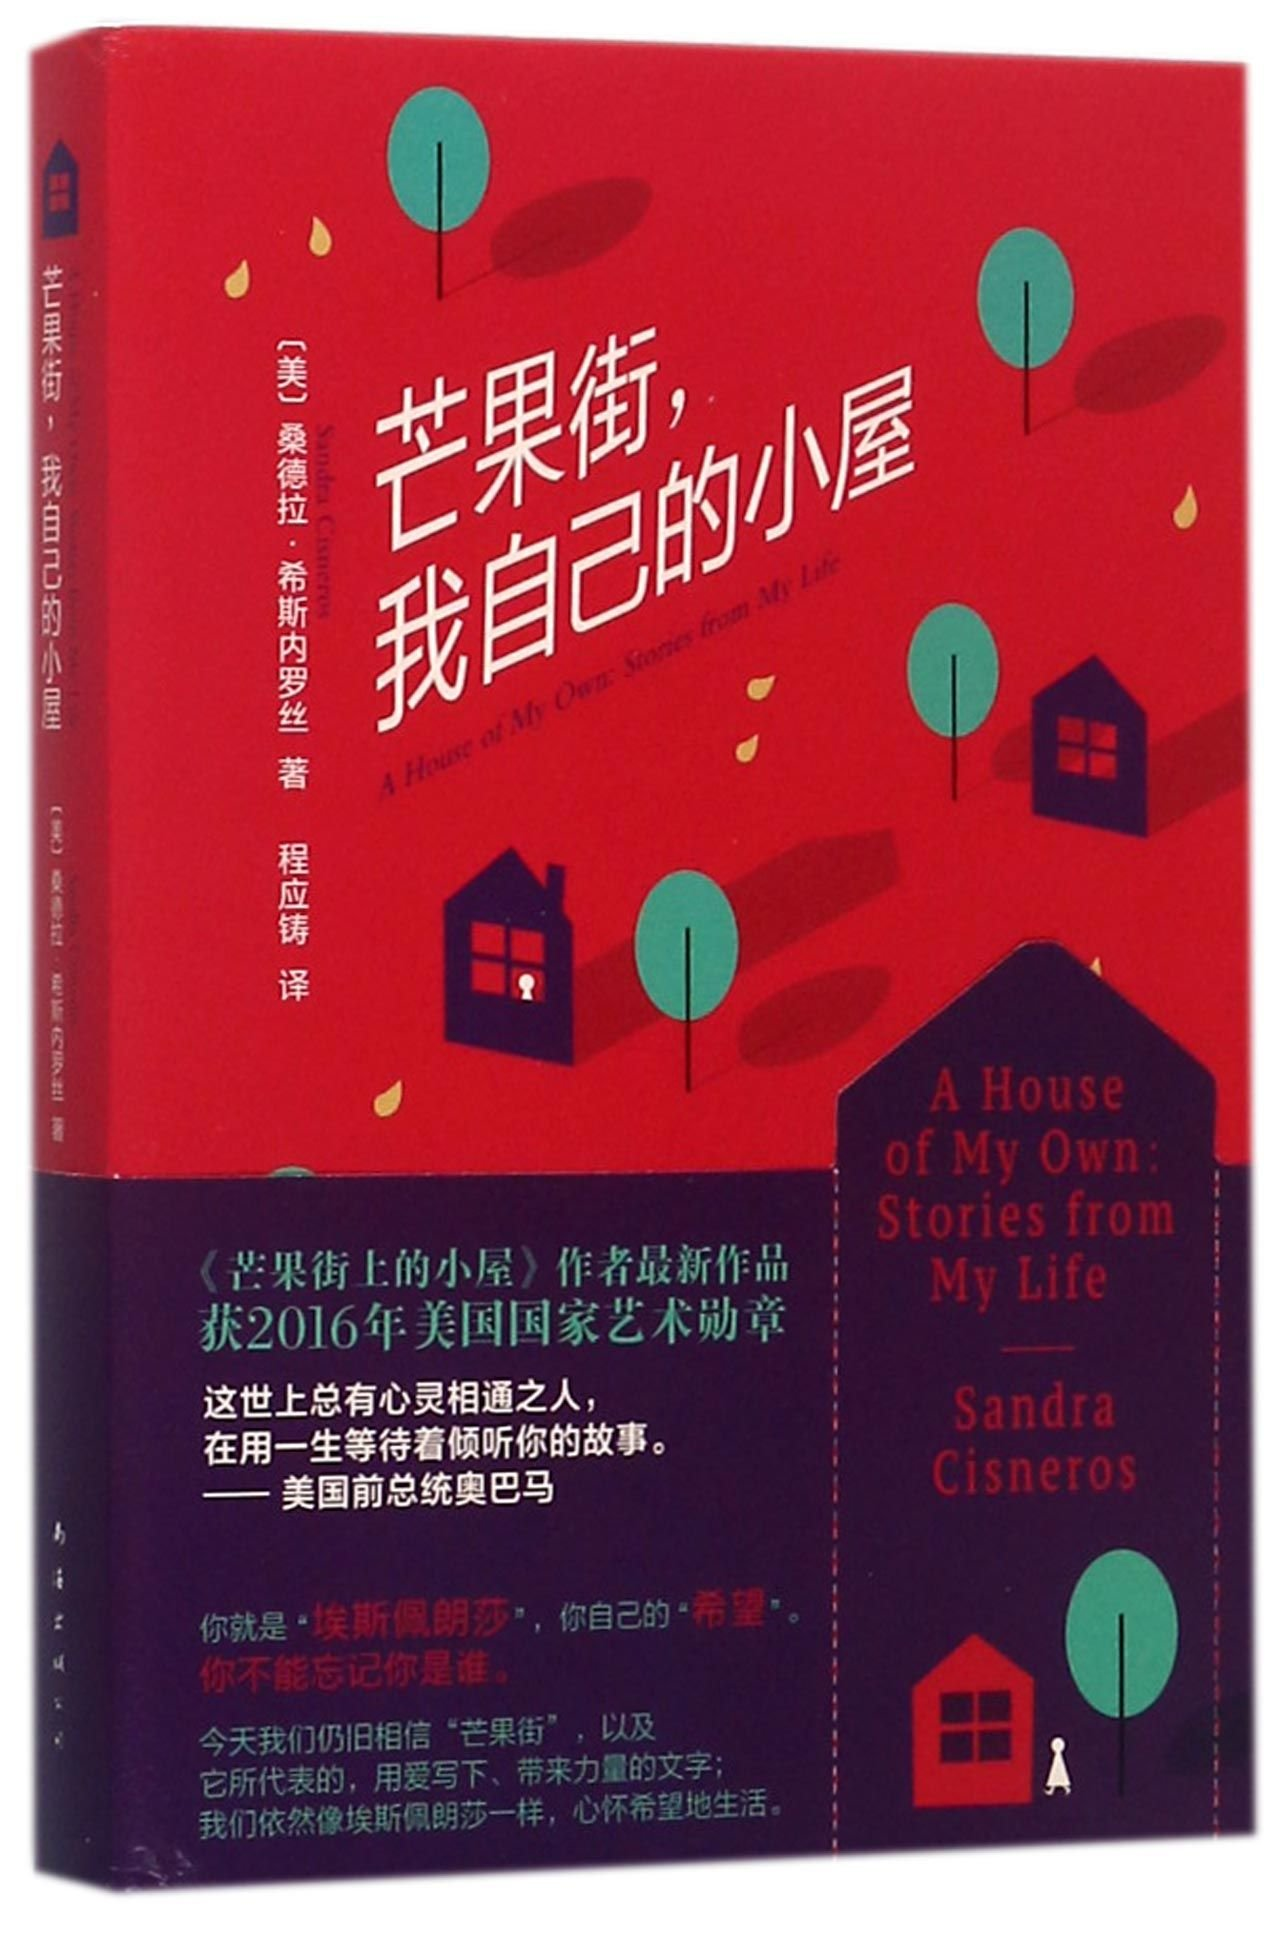 A House of My Own: Stories from My Life (Chinese Edition): Sandra Cisneros:  9787544287722: Amazon.com: Books